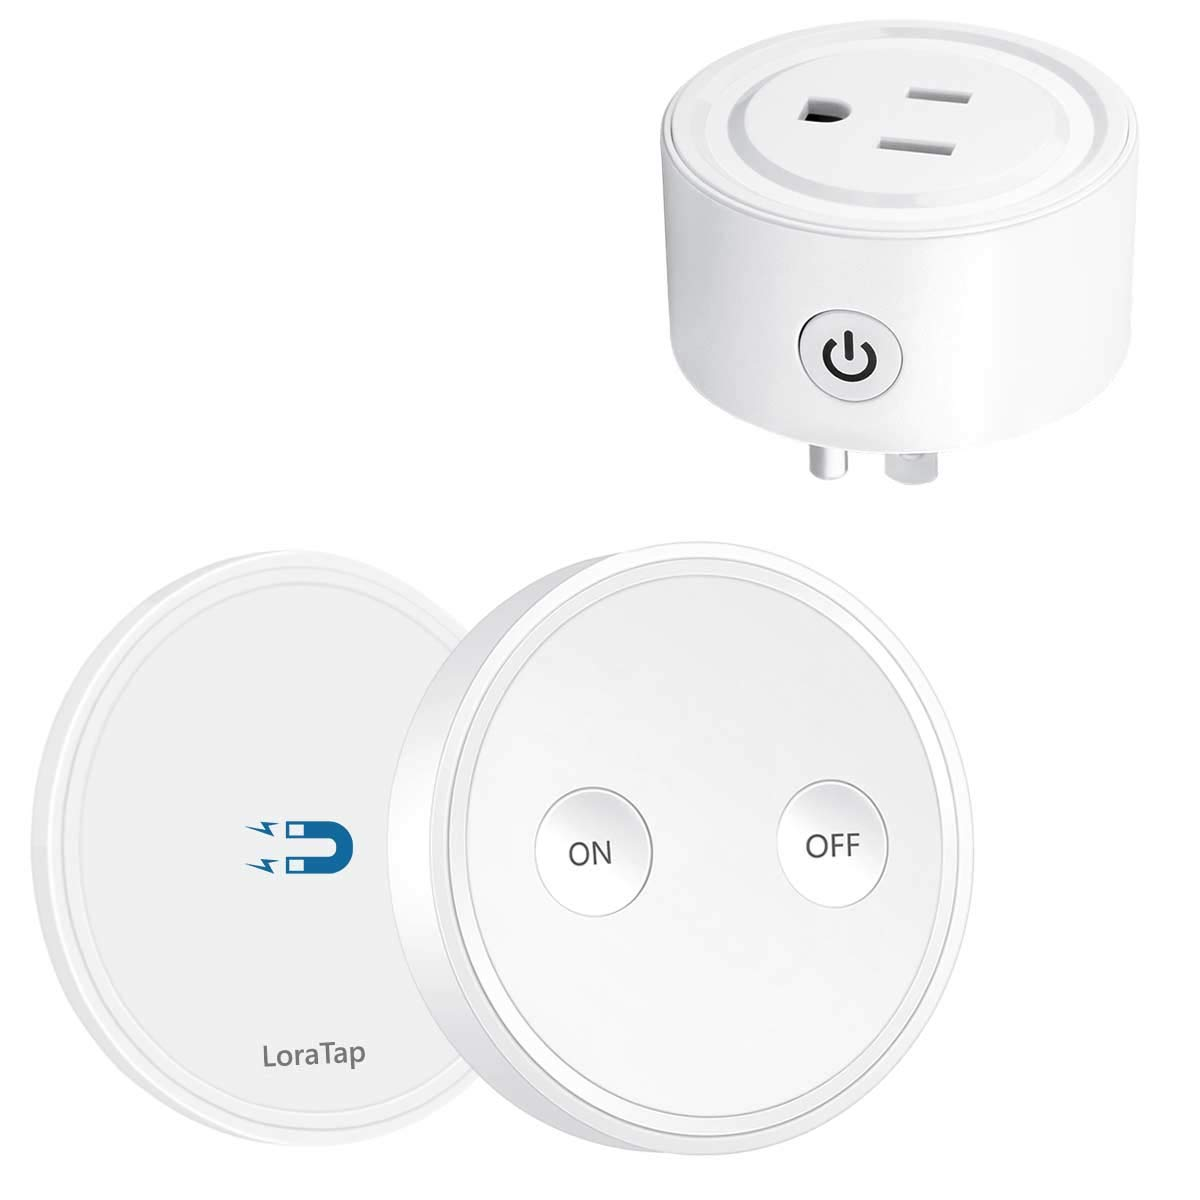 LoraTap Mini Remote Control Outlet Plug Adapter with Remote, 656ft Range Wireless Light Switch for Household Appliances, No Hub Required, 10A/1100W, White, 5 Years Warranty